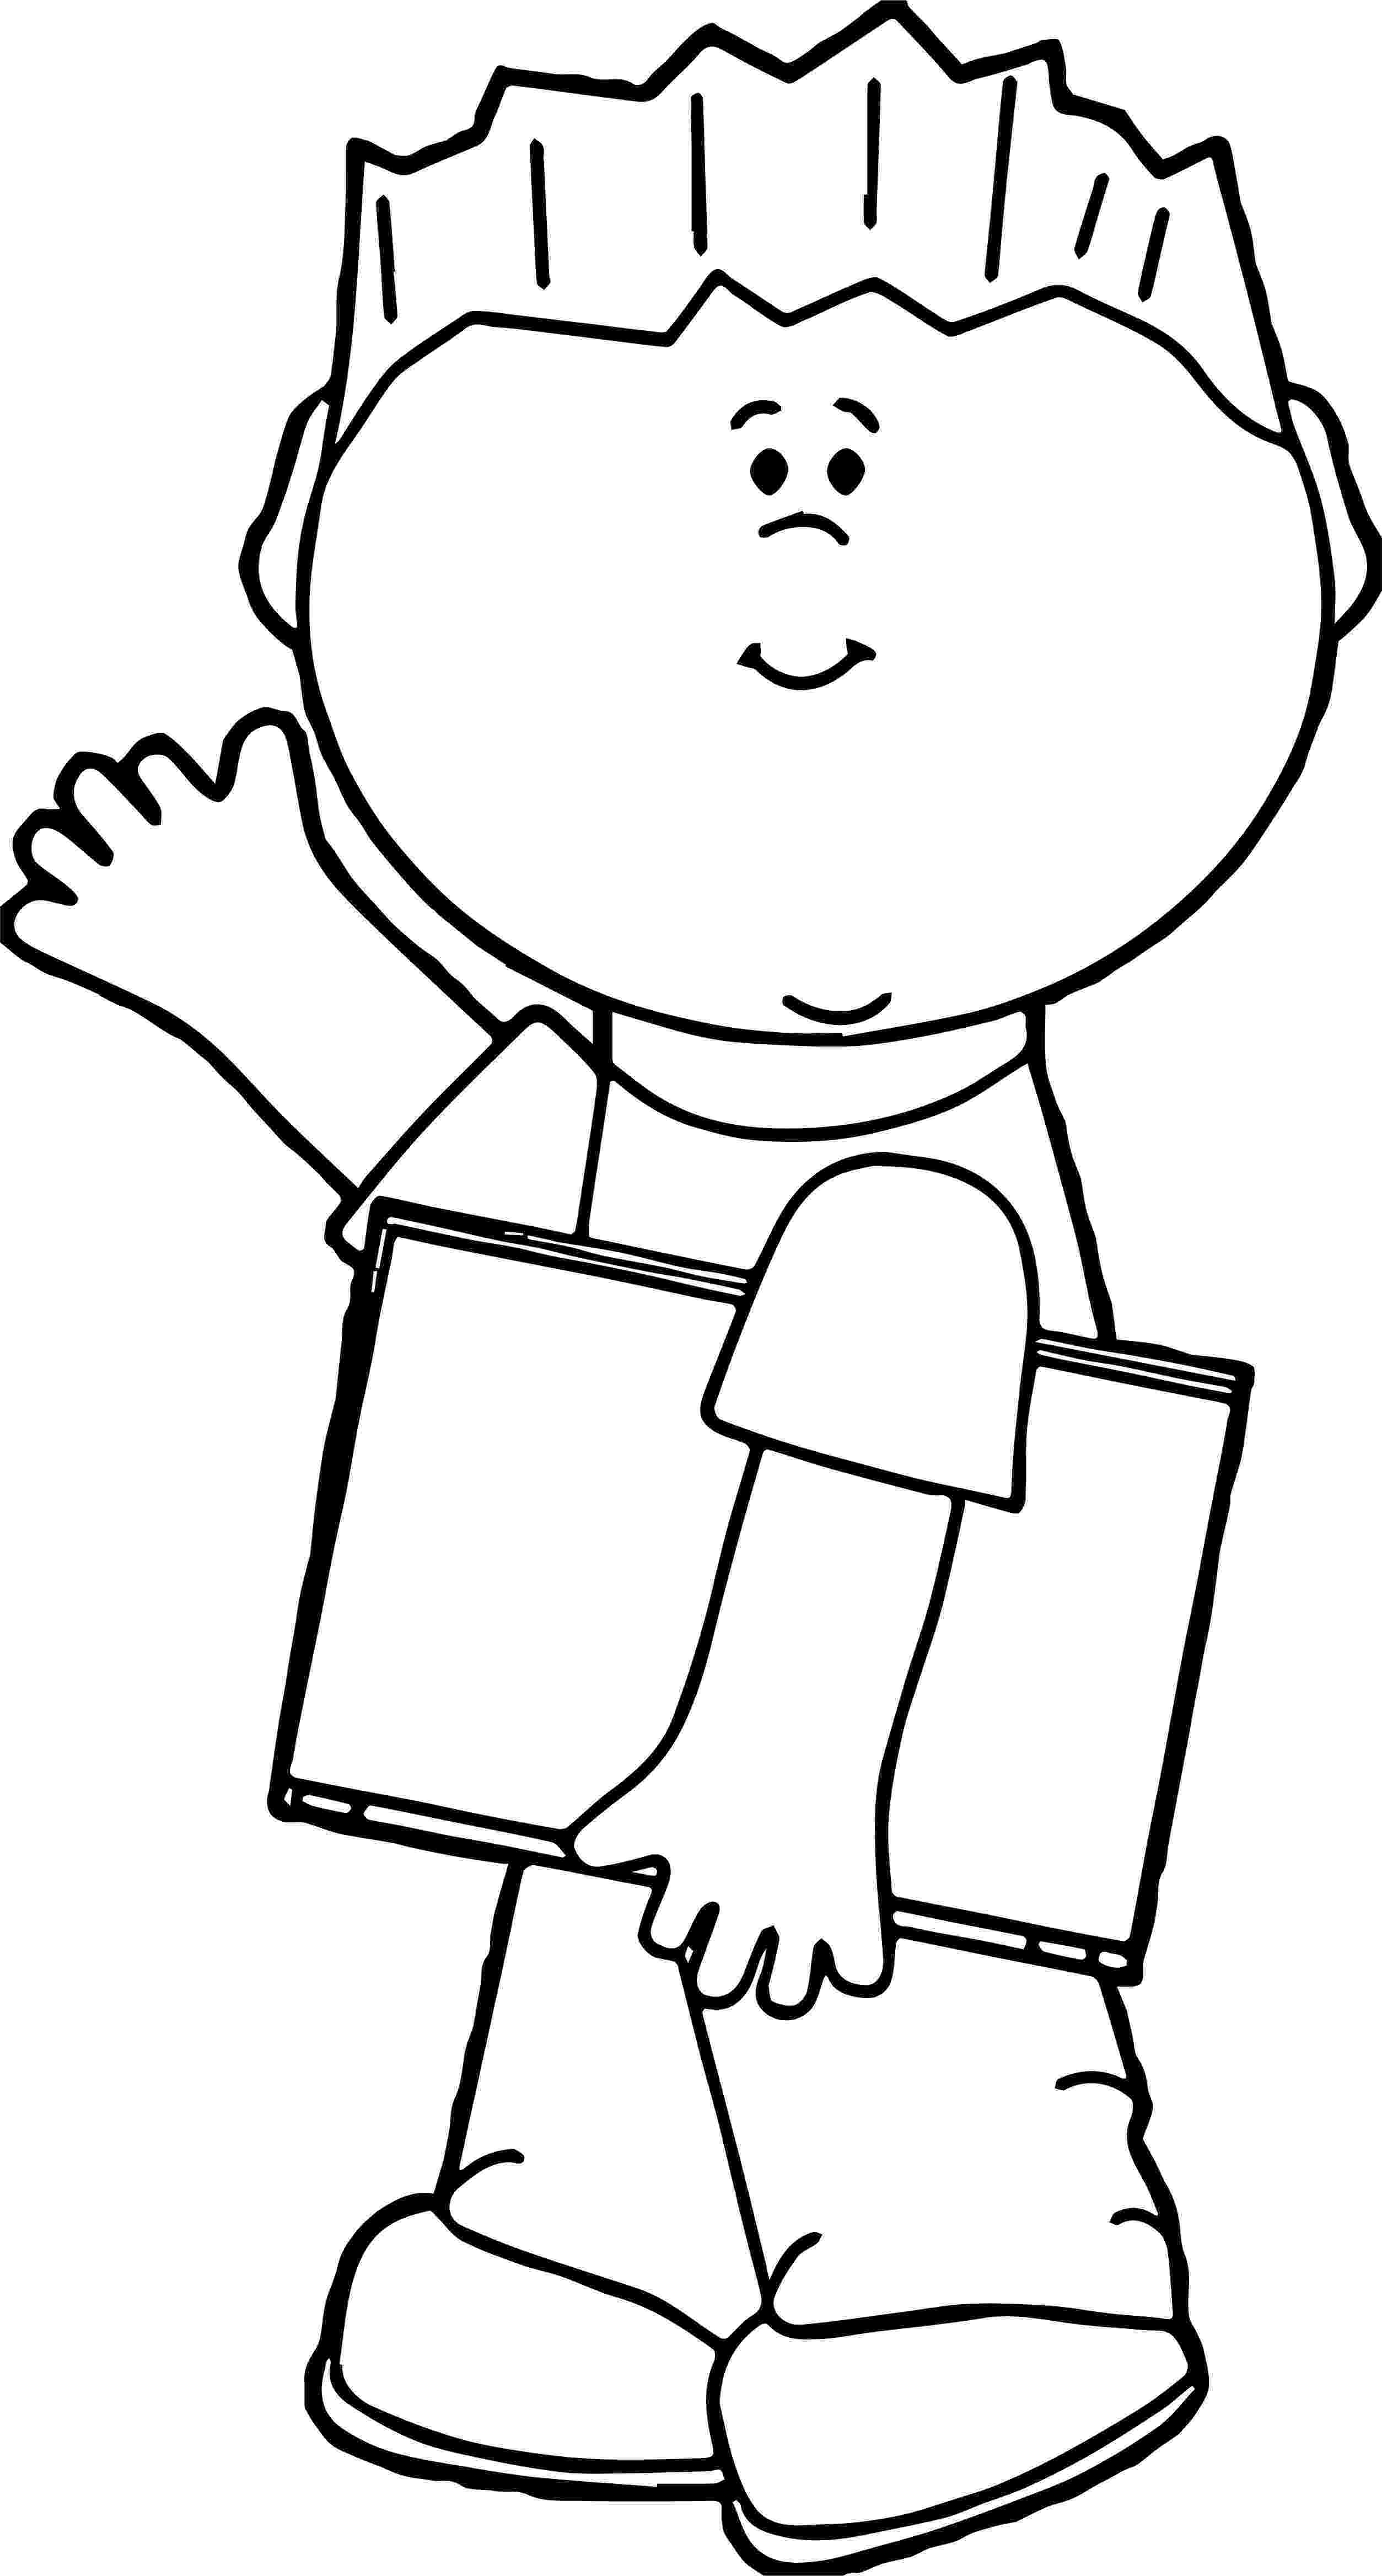 student coloring page student boy book coloring page wecoloringpagecom coloring page student